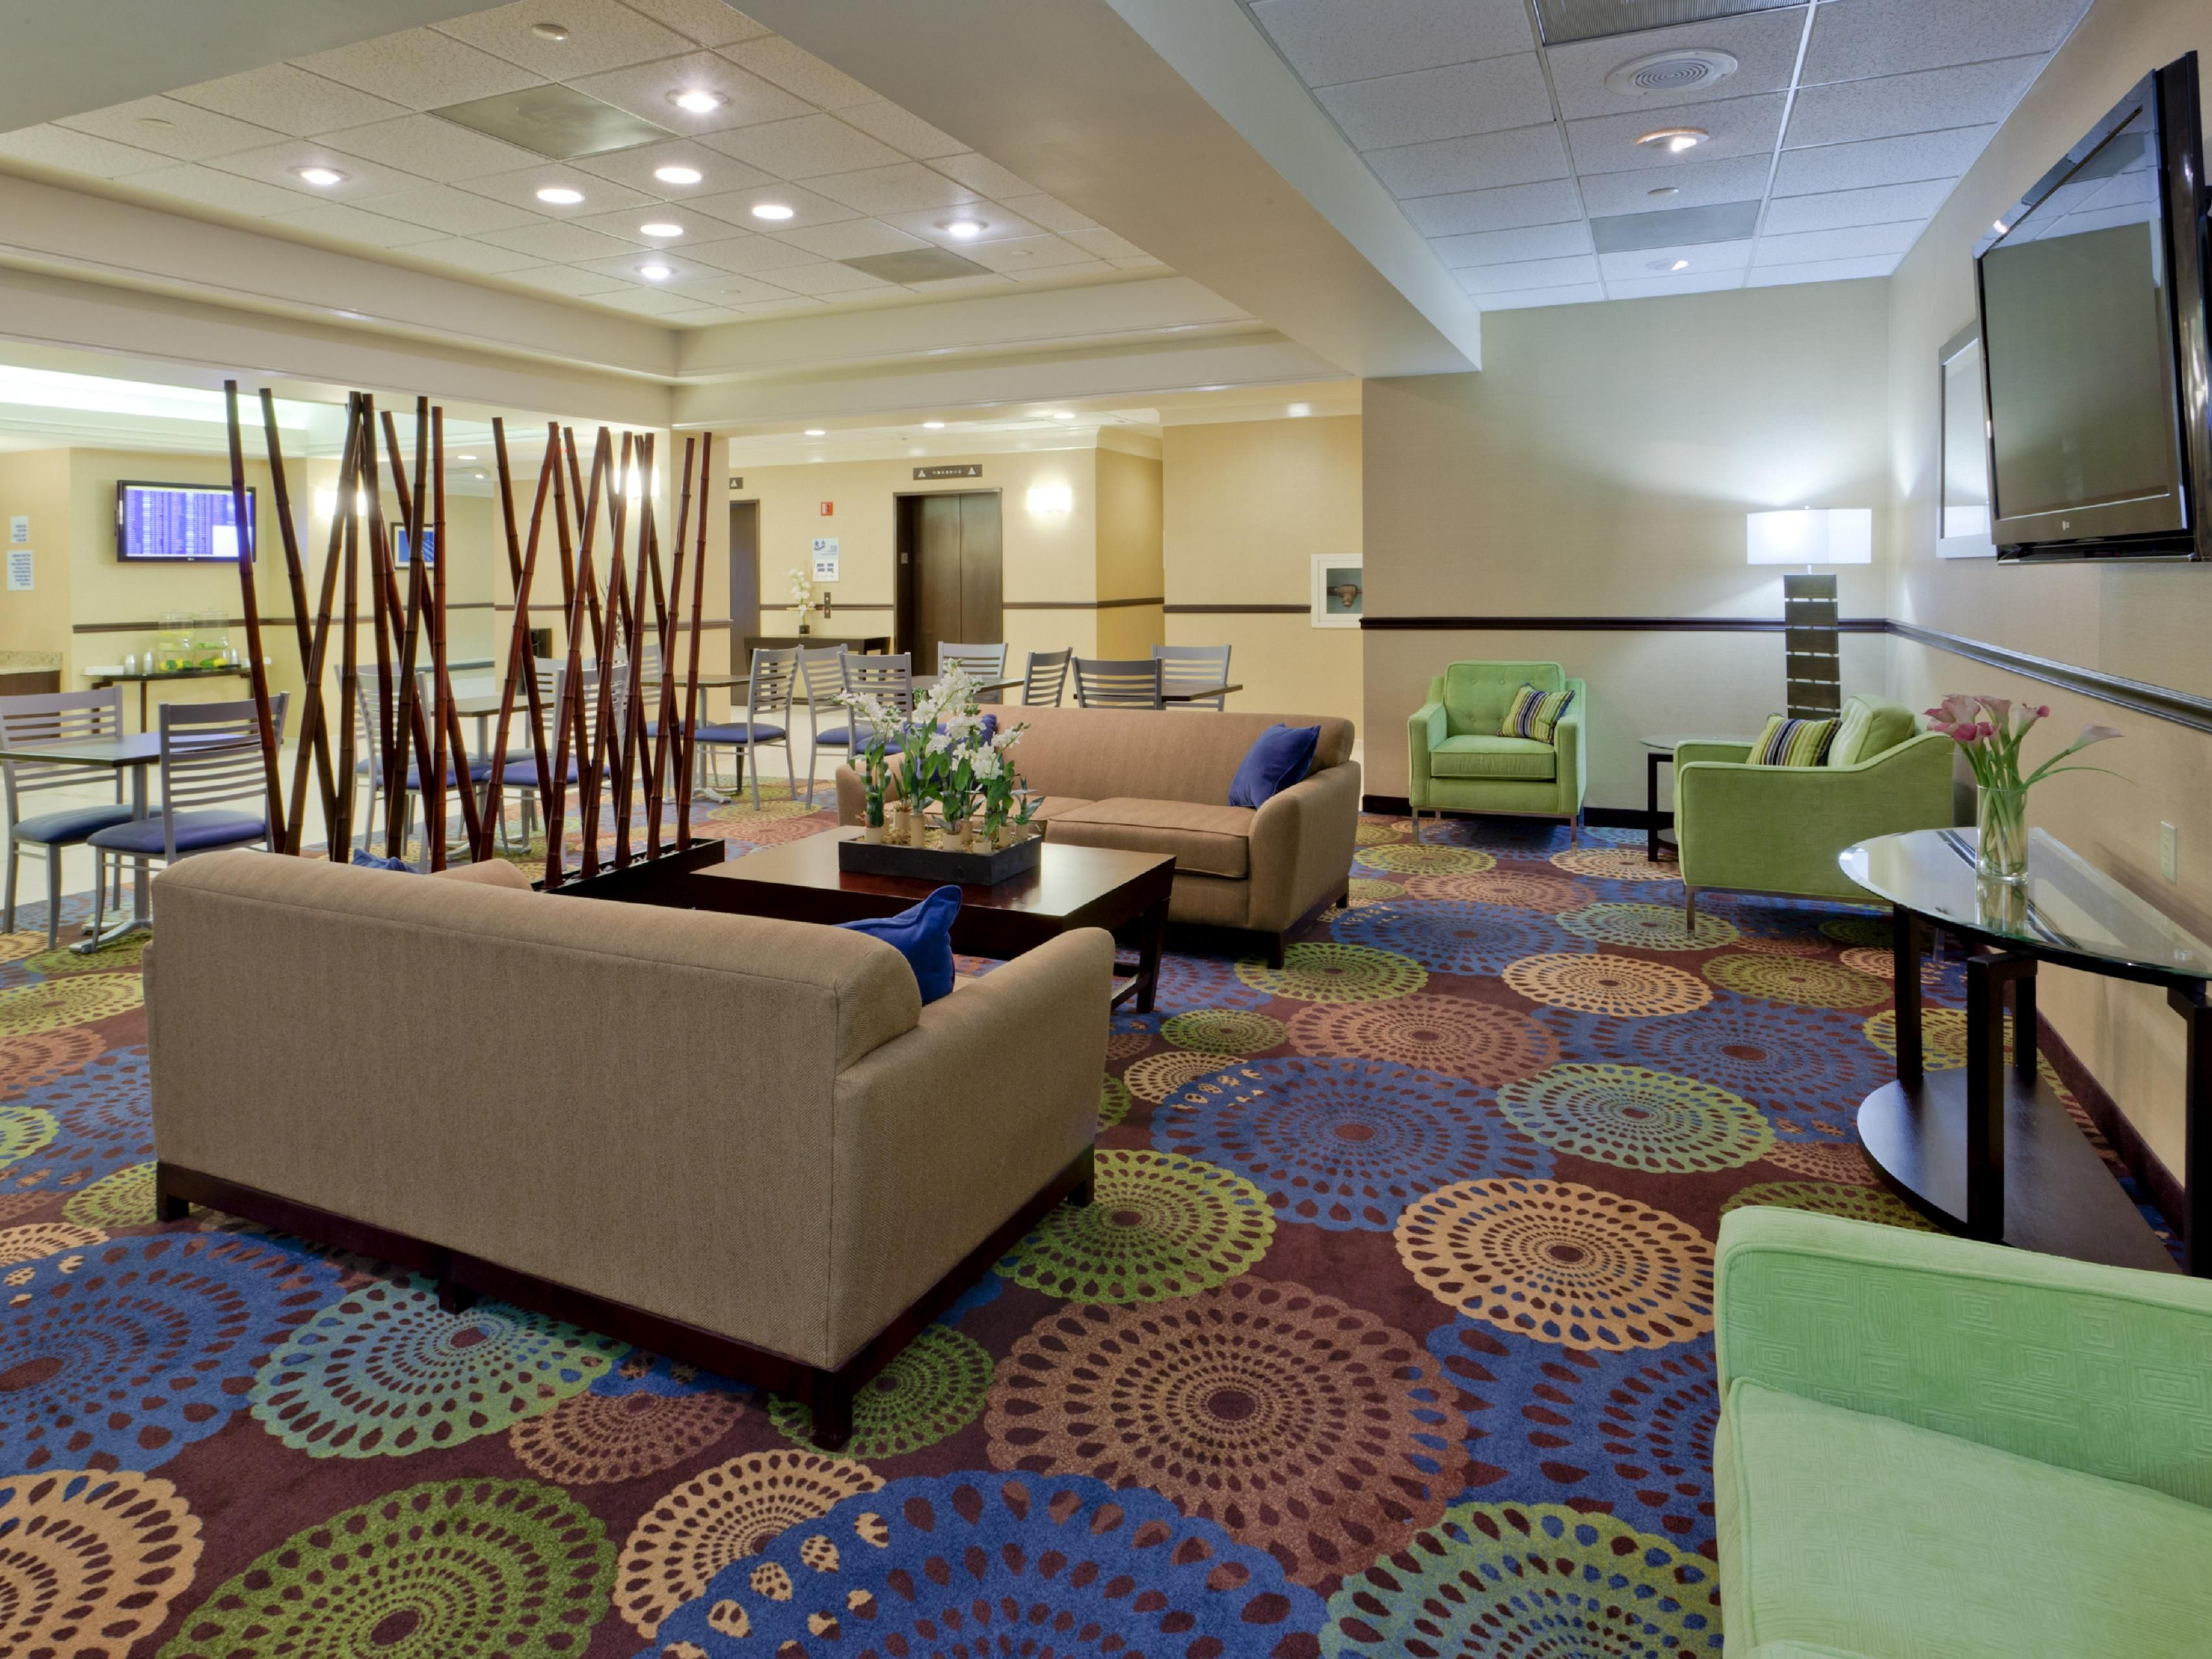 Relax and watch television in our cozy lobby seating area.